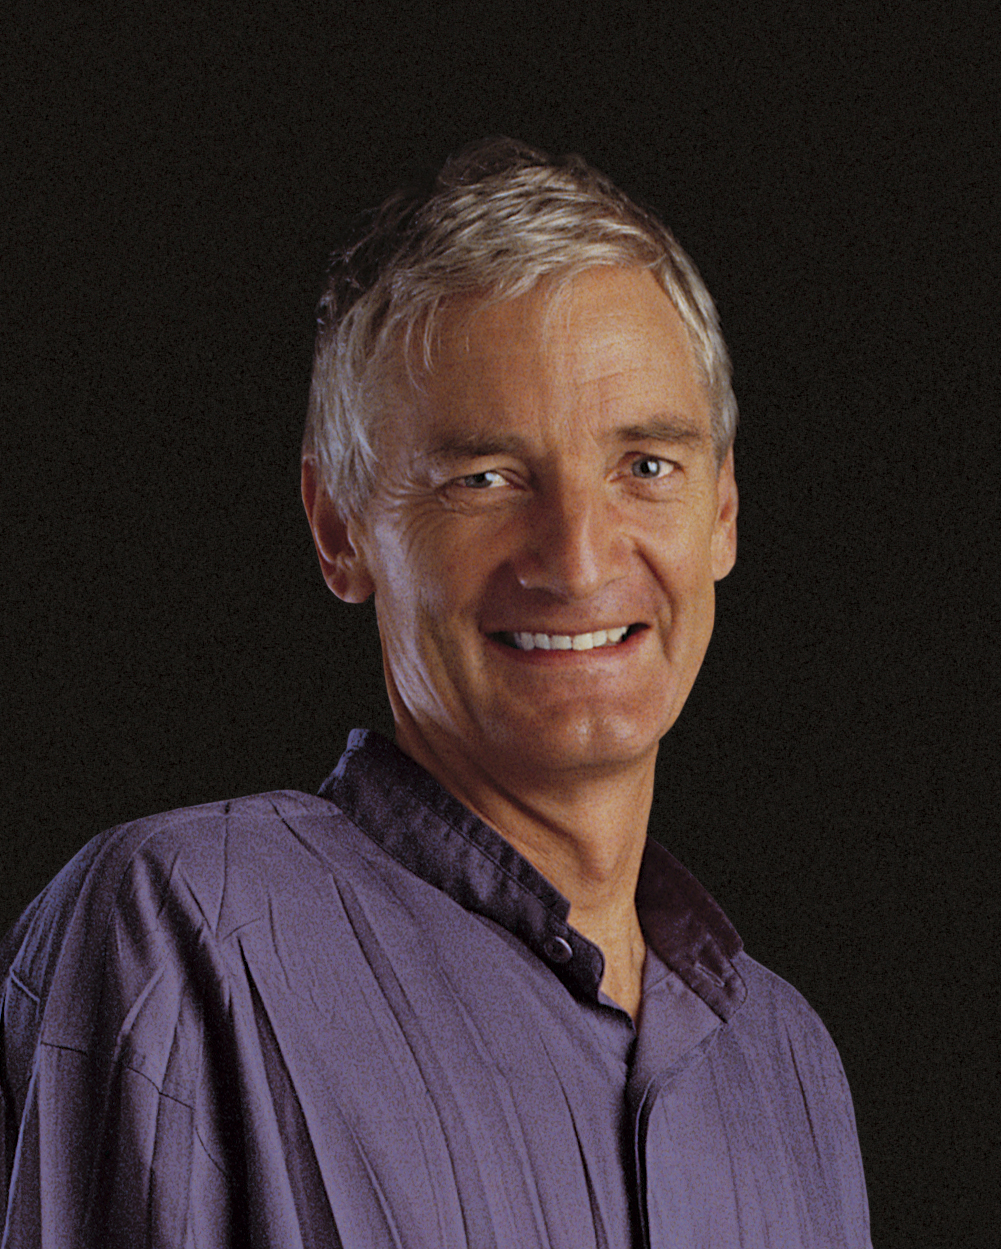 Sir James Dyson Kép:Wikipedia